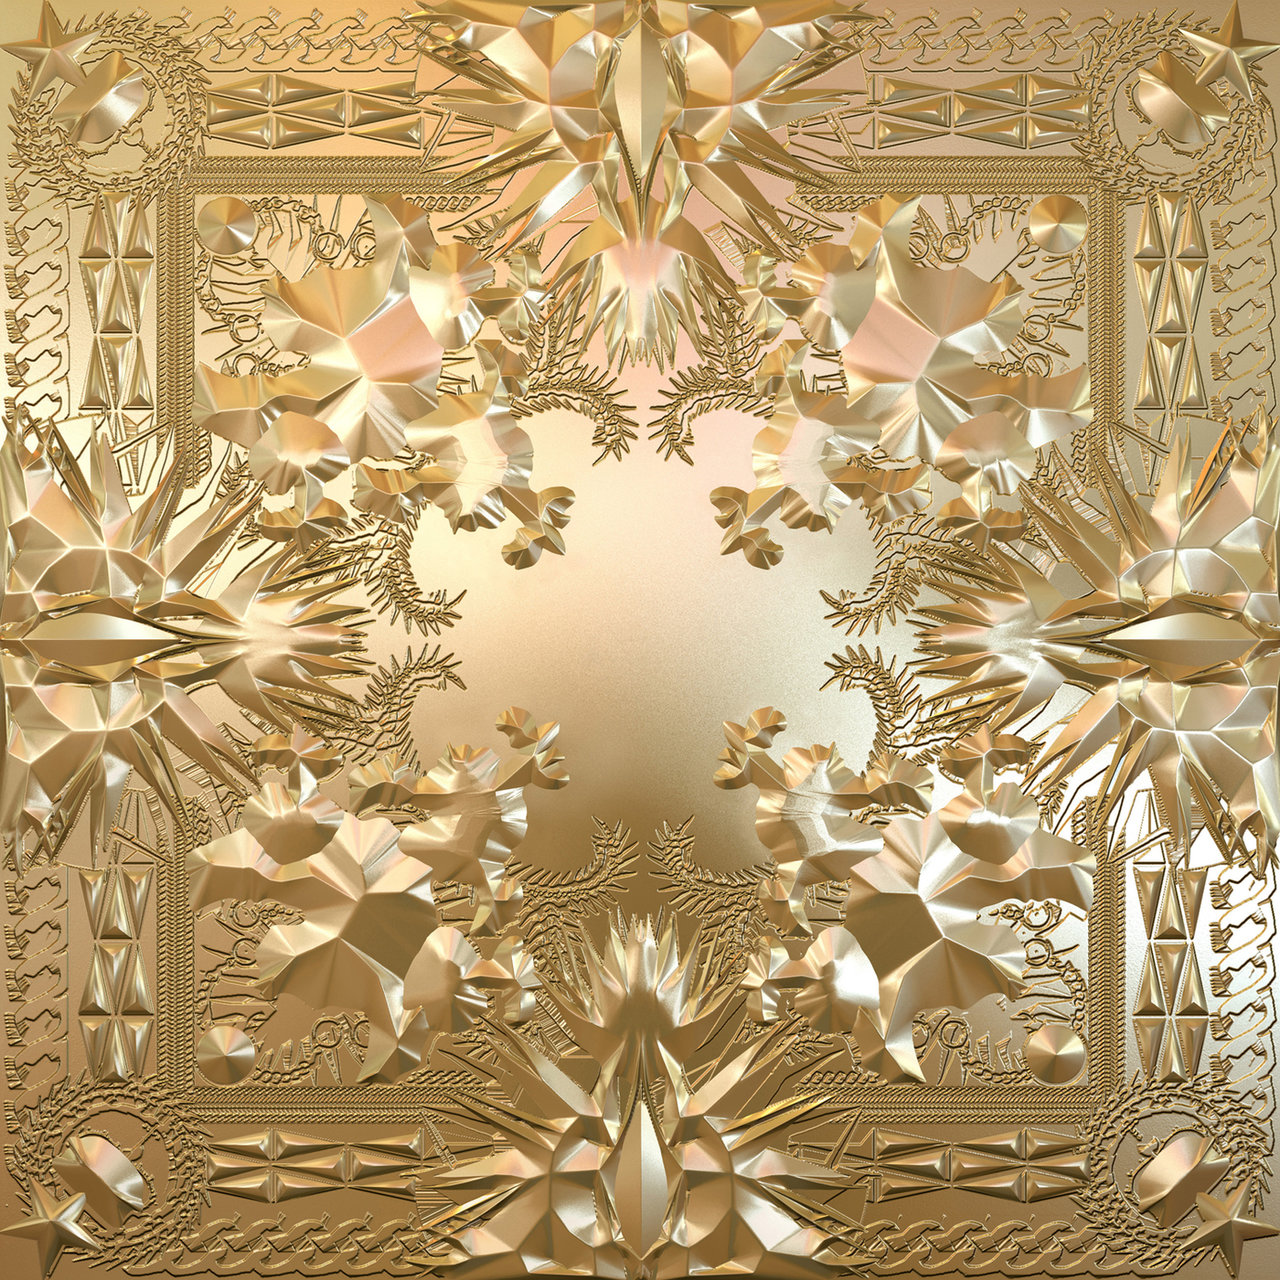 Jay-Z and Kanye West - Watch The Throne